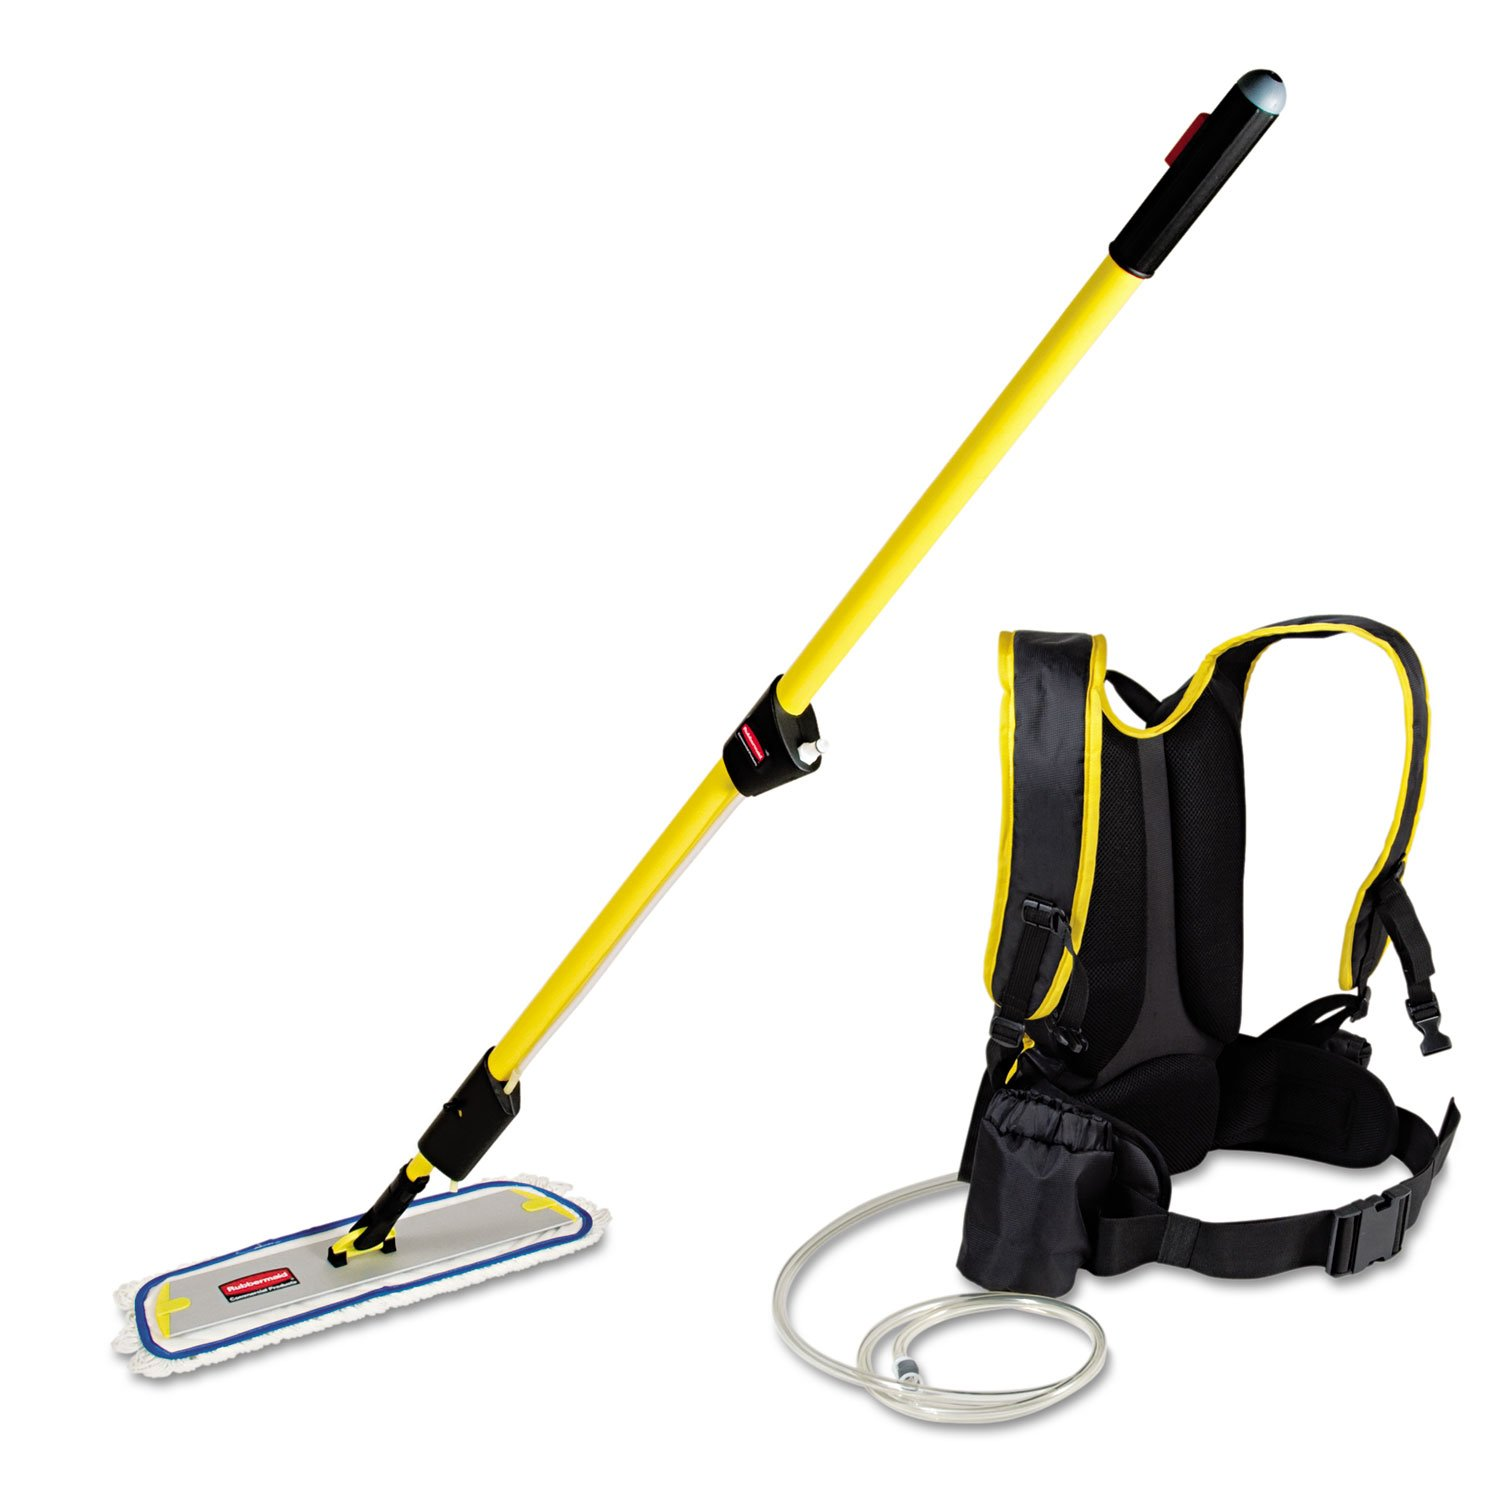 Rubbermaid RCP Q979 Flow Finish Floor Cleaning System with Backpack, Flat Mop/Frame, and Trigger Handle